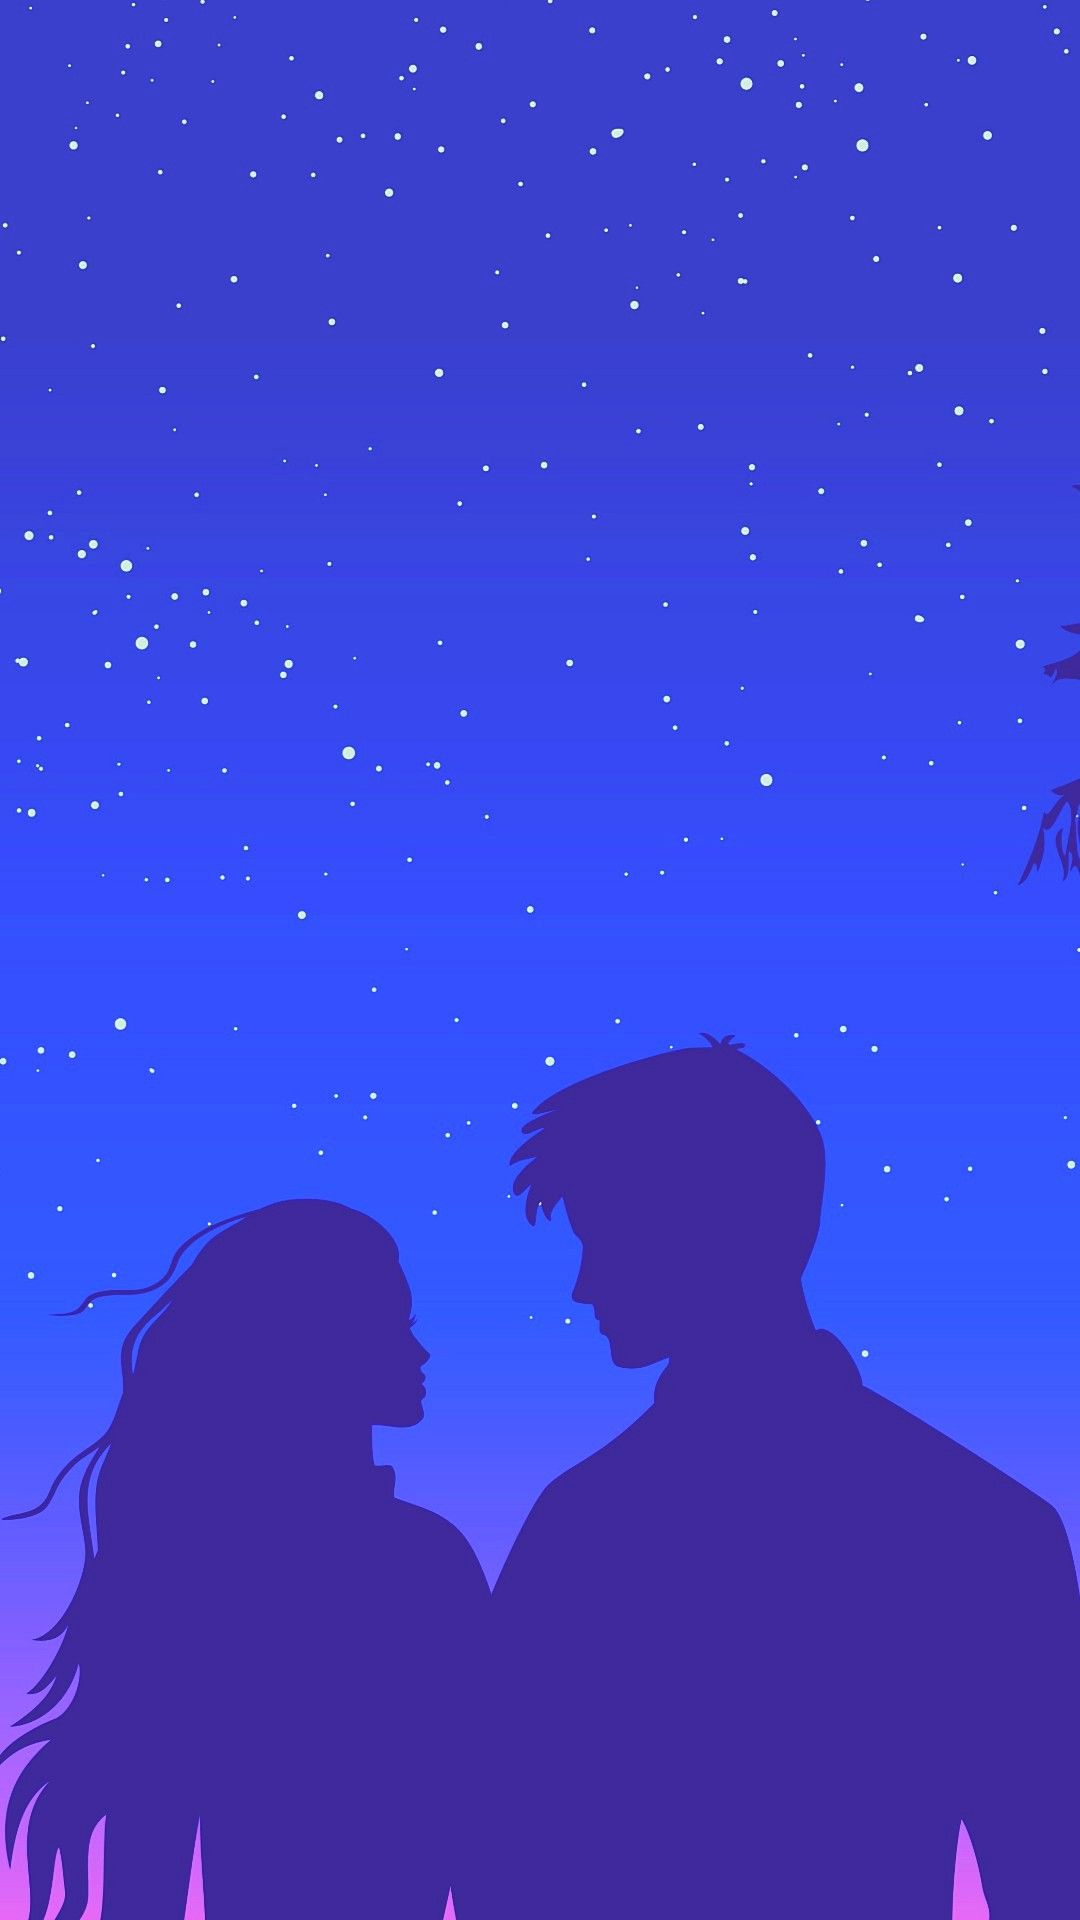 Couples Silhouette Love Hd Wallpapers 1080x1920 Cute Mobile Wallpapers Couple Silhouette Wallpaper Iphone Love